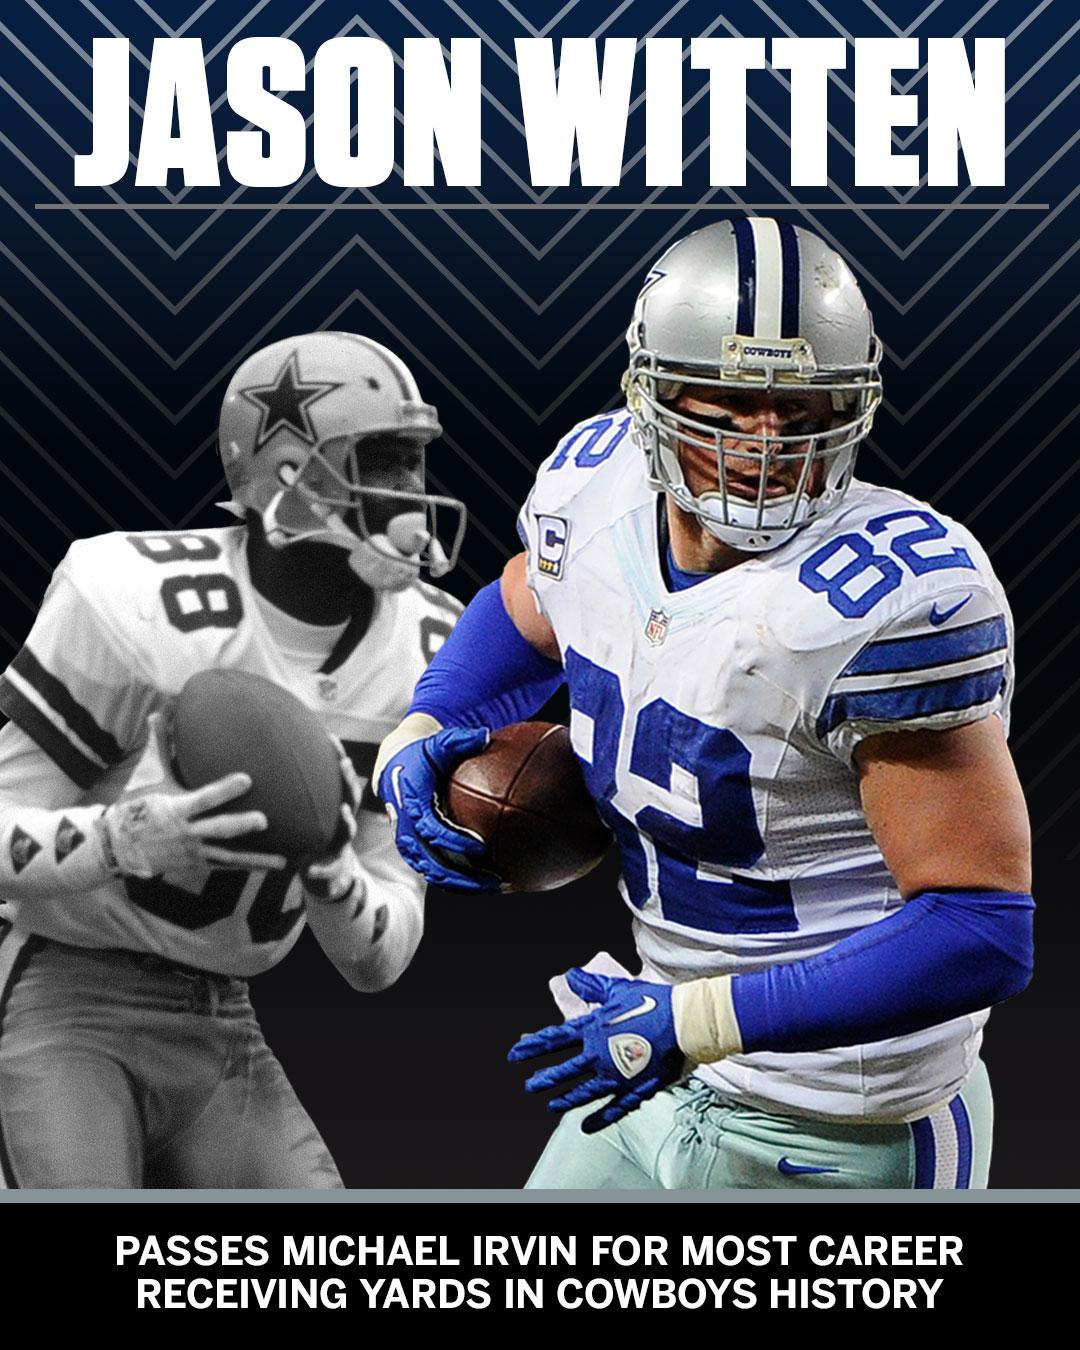 Another record for Jason Witten. https://t.co/hlP8TXCF4u